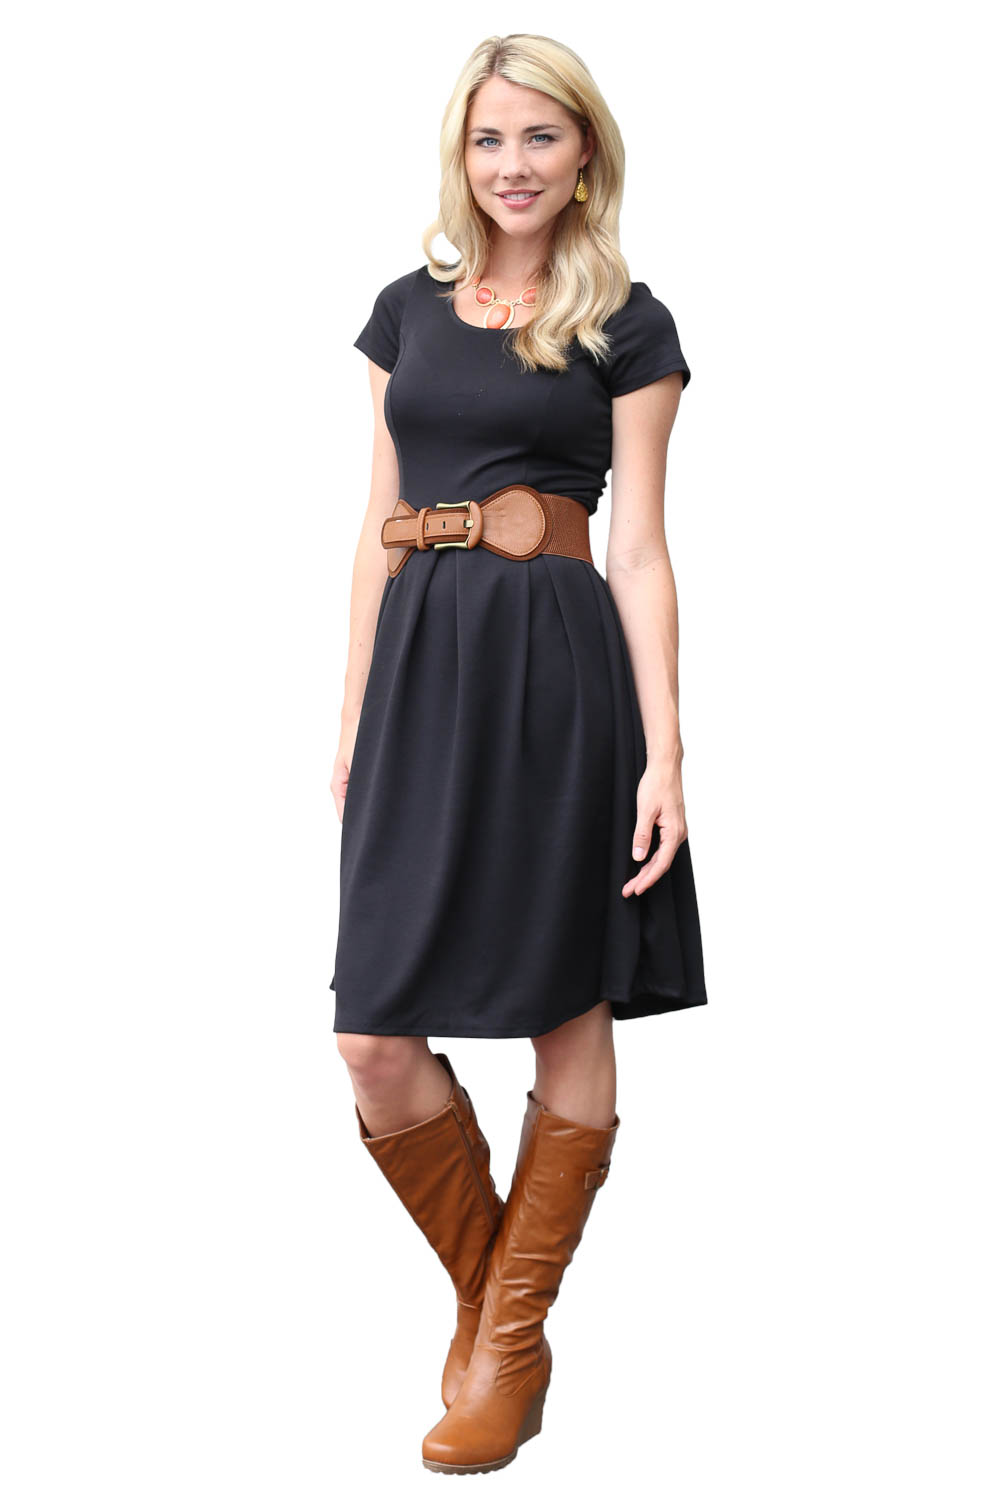 Ivy Modest Dress In Black